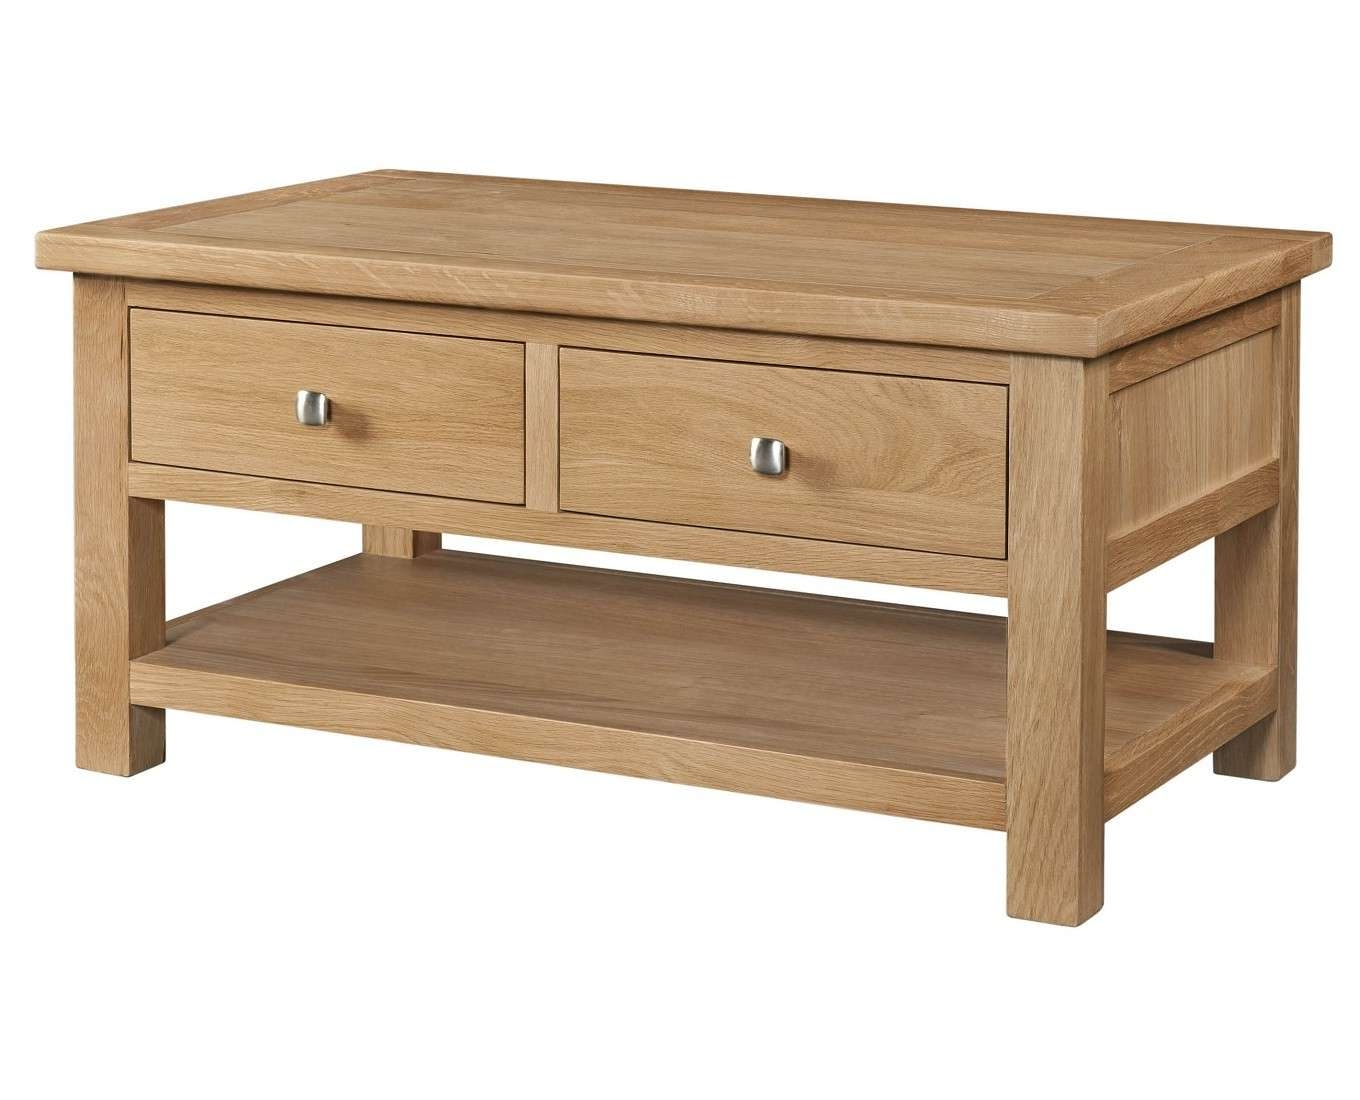 Oak Furniture Uk With Newest Light Oak Coffee Tables With Drawers (View 17 of 20)